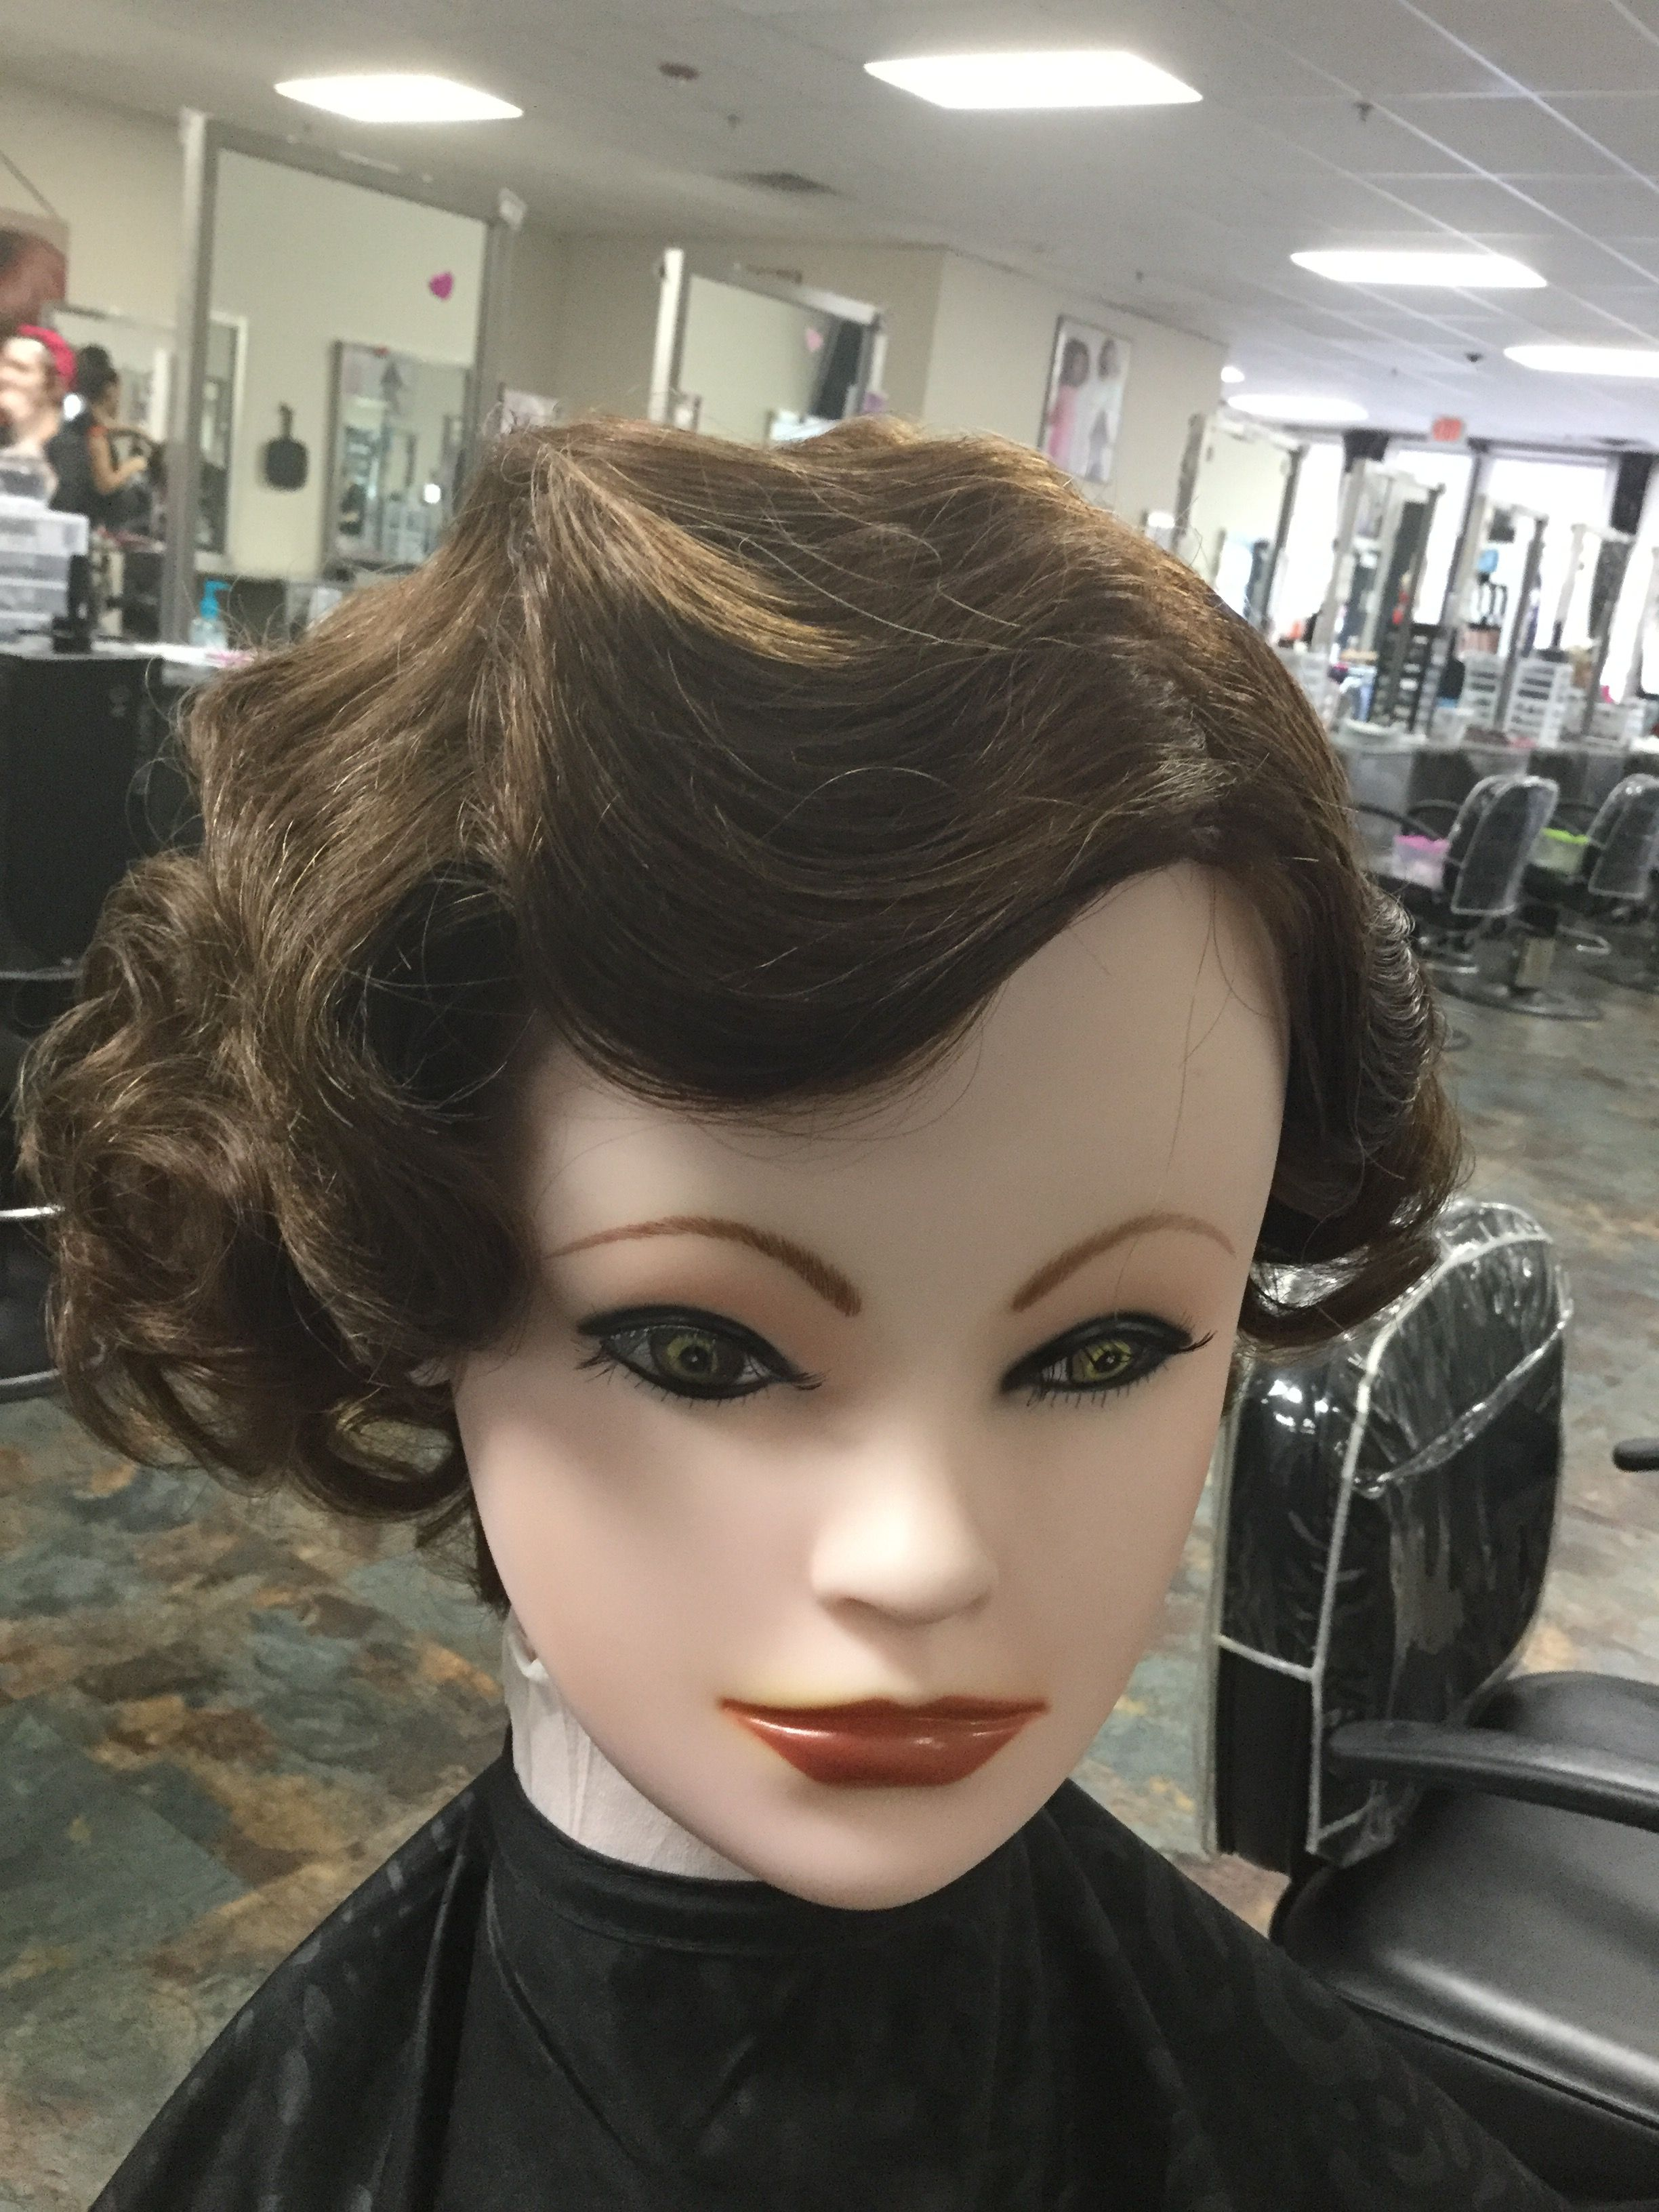 Pin by phouvisal pheng on hair style pinterest hair style